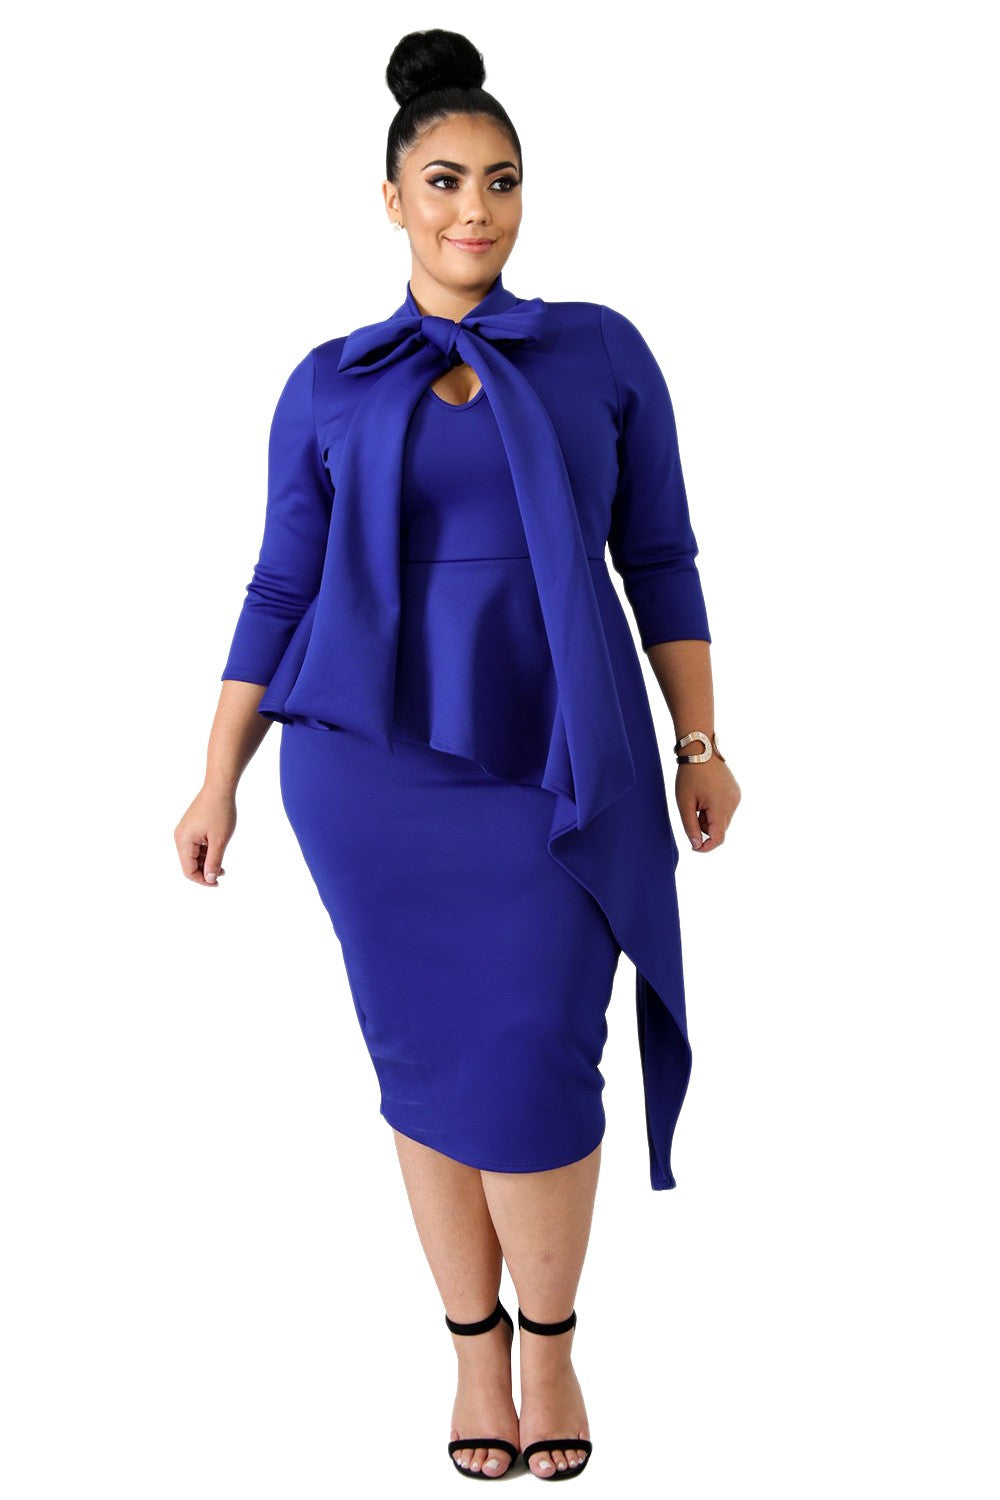 Blue Plus Size Bodycon Dress